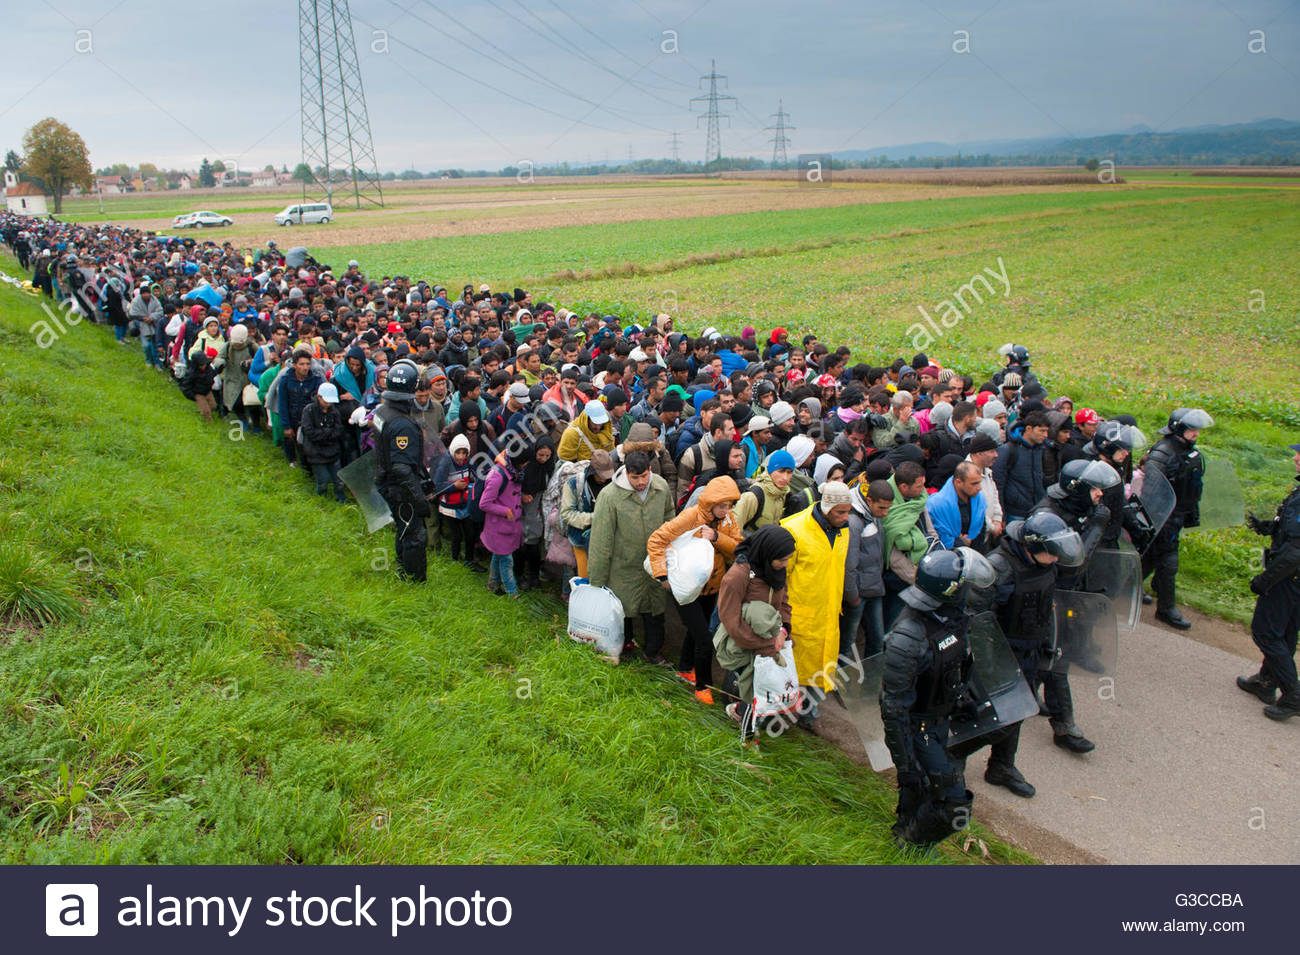 Syrian refugees arriving from Croatia,rigonze,Slovenia,22.10.2015 - Stock Image